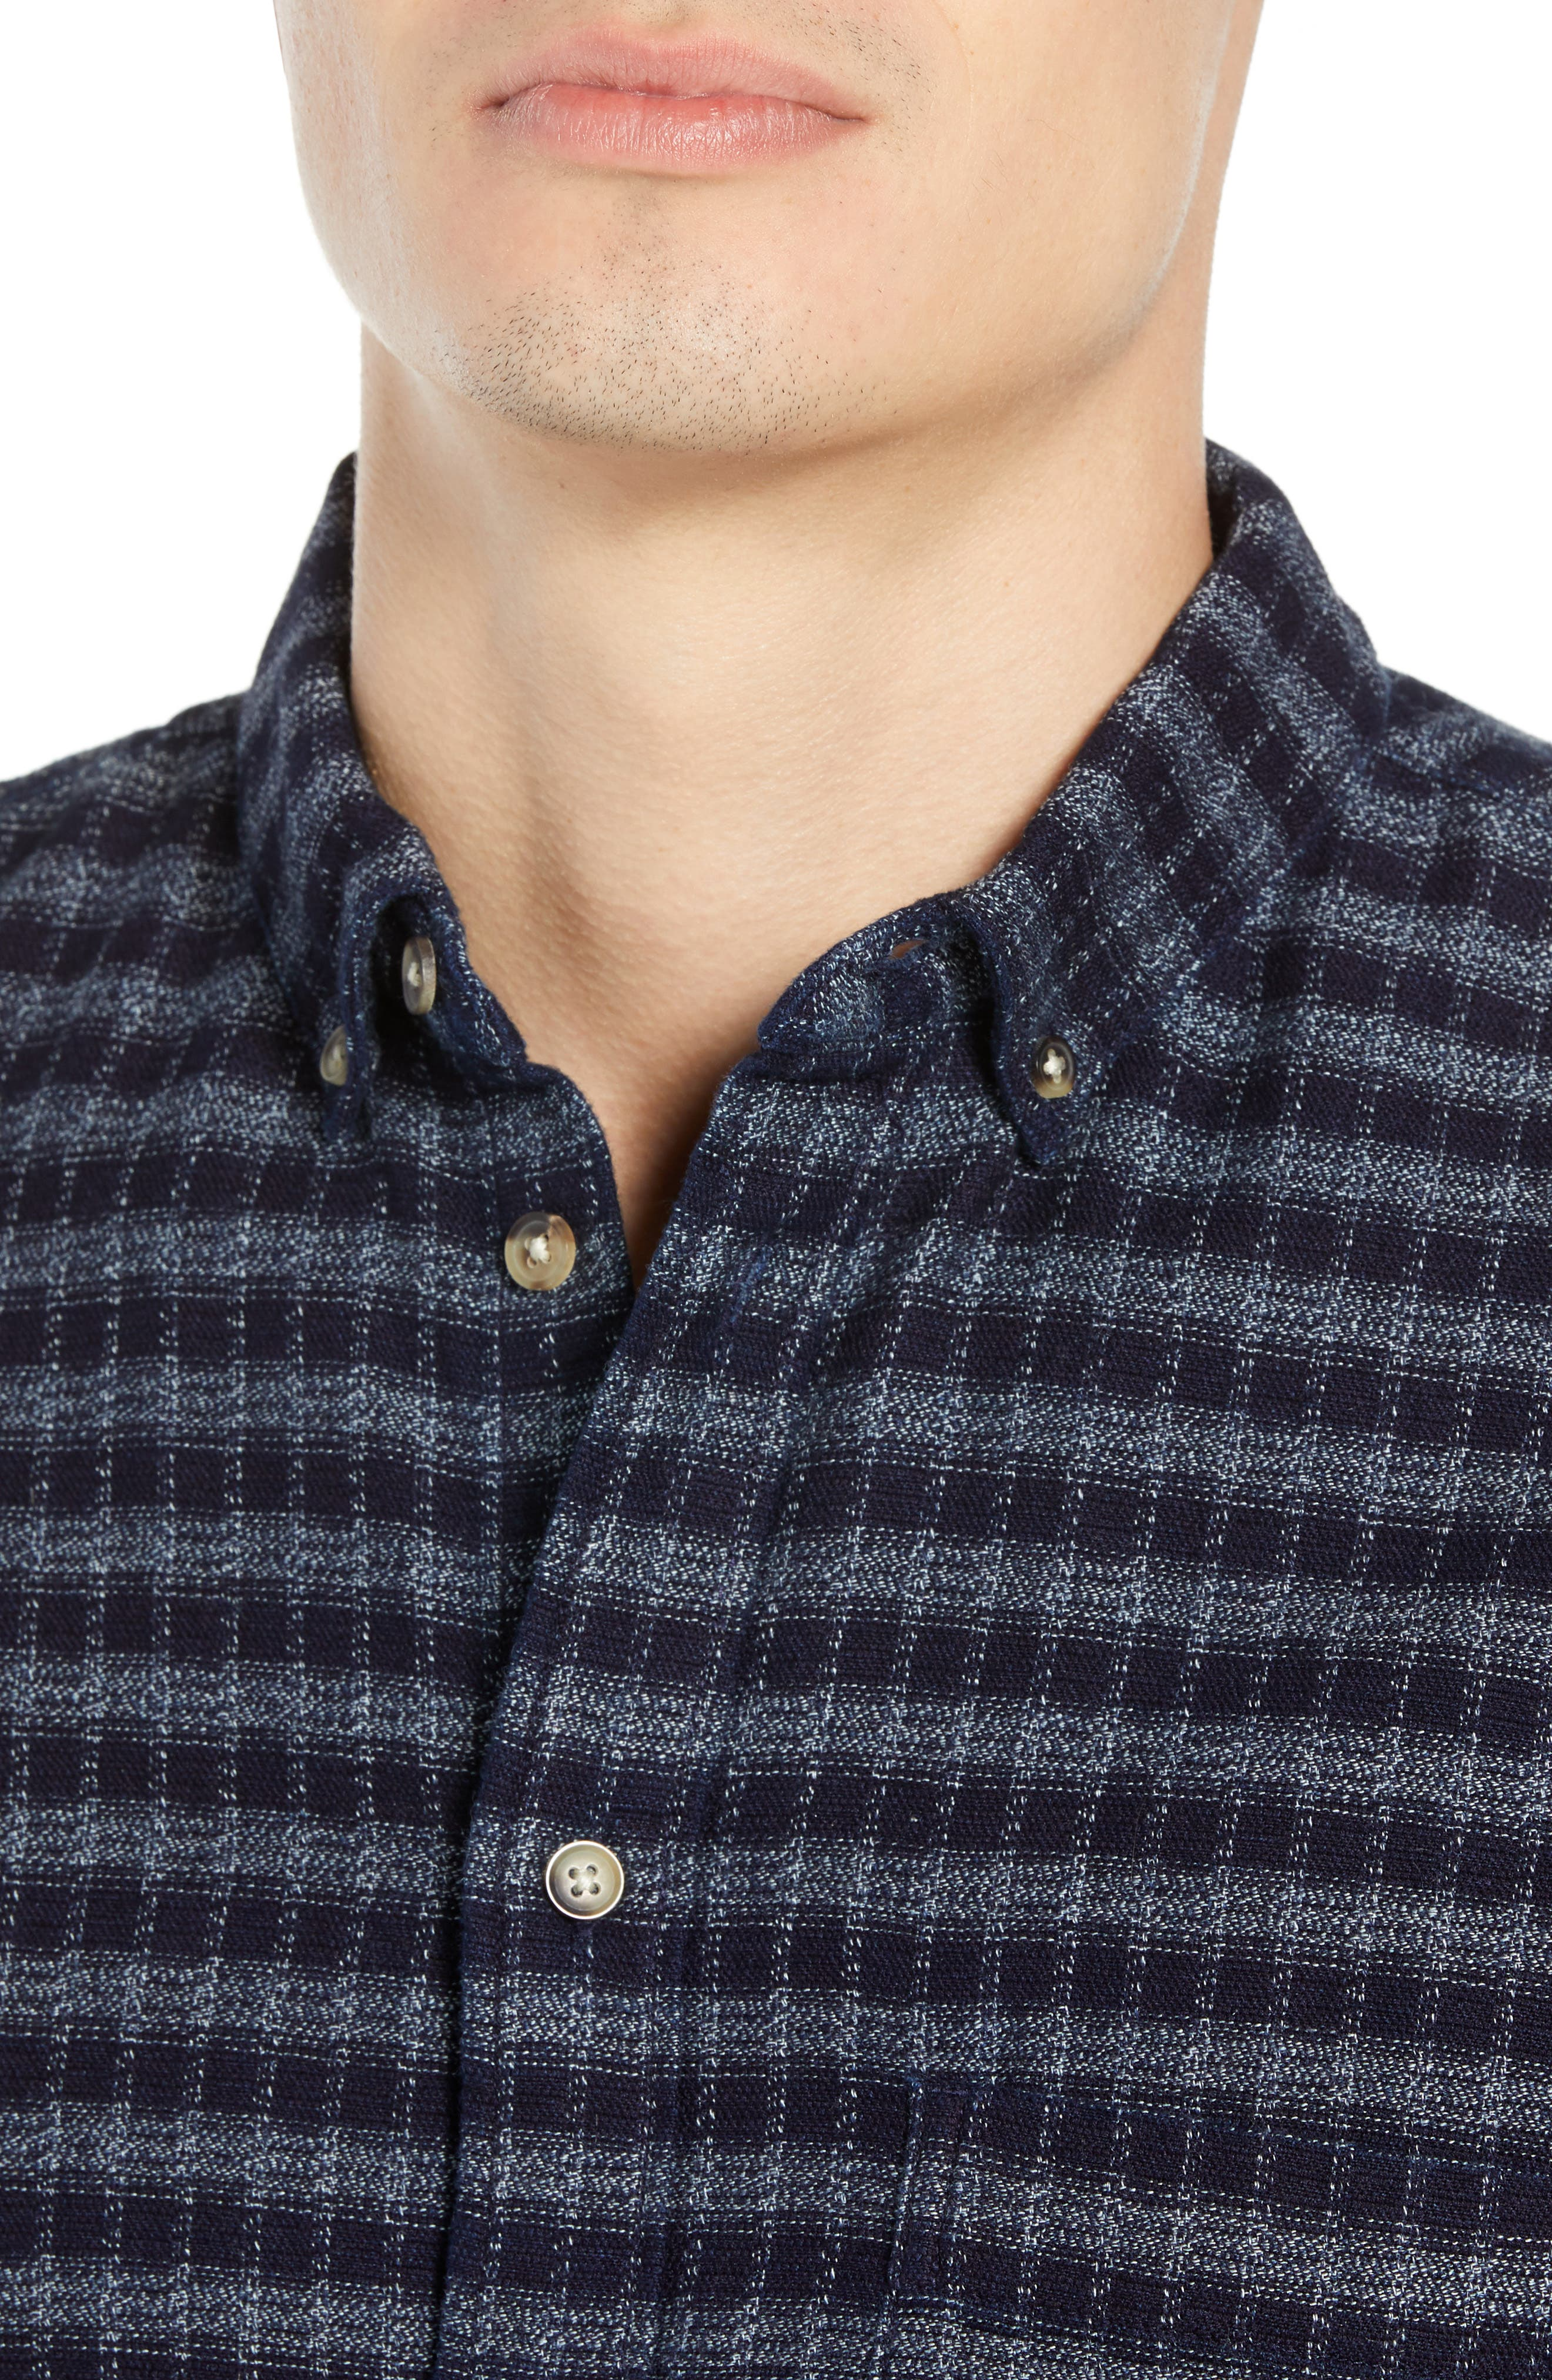 Standard Check Sport Shirt,                             Alternate thumbnail 2, color,                             INDIGO CHECK